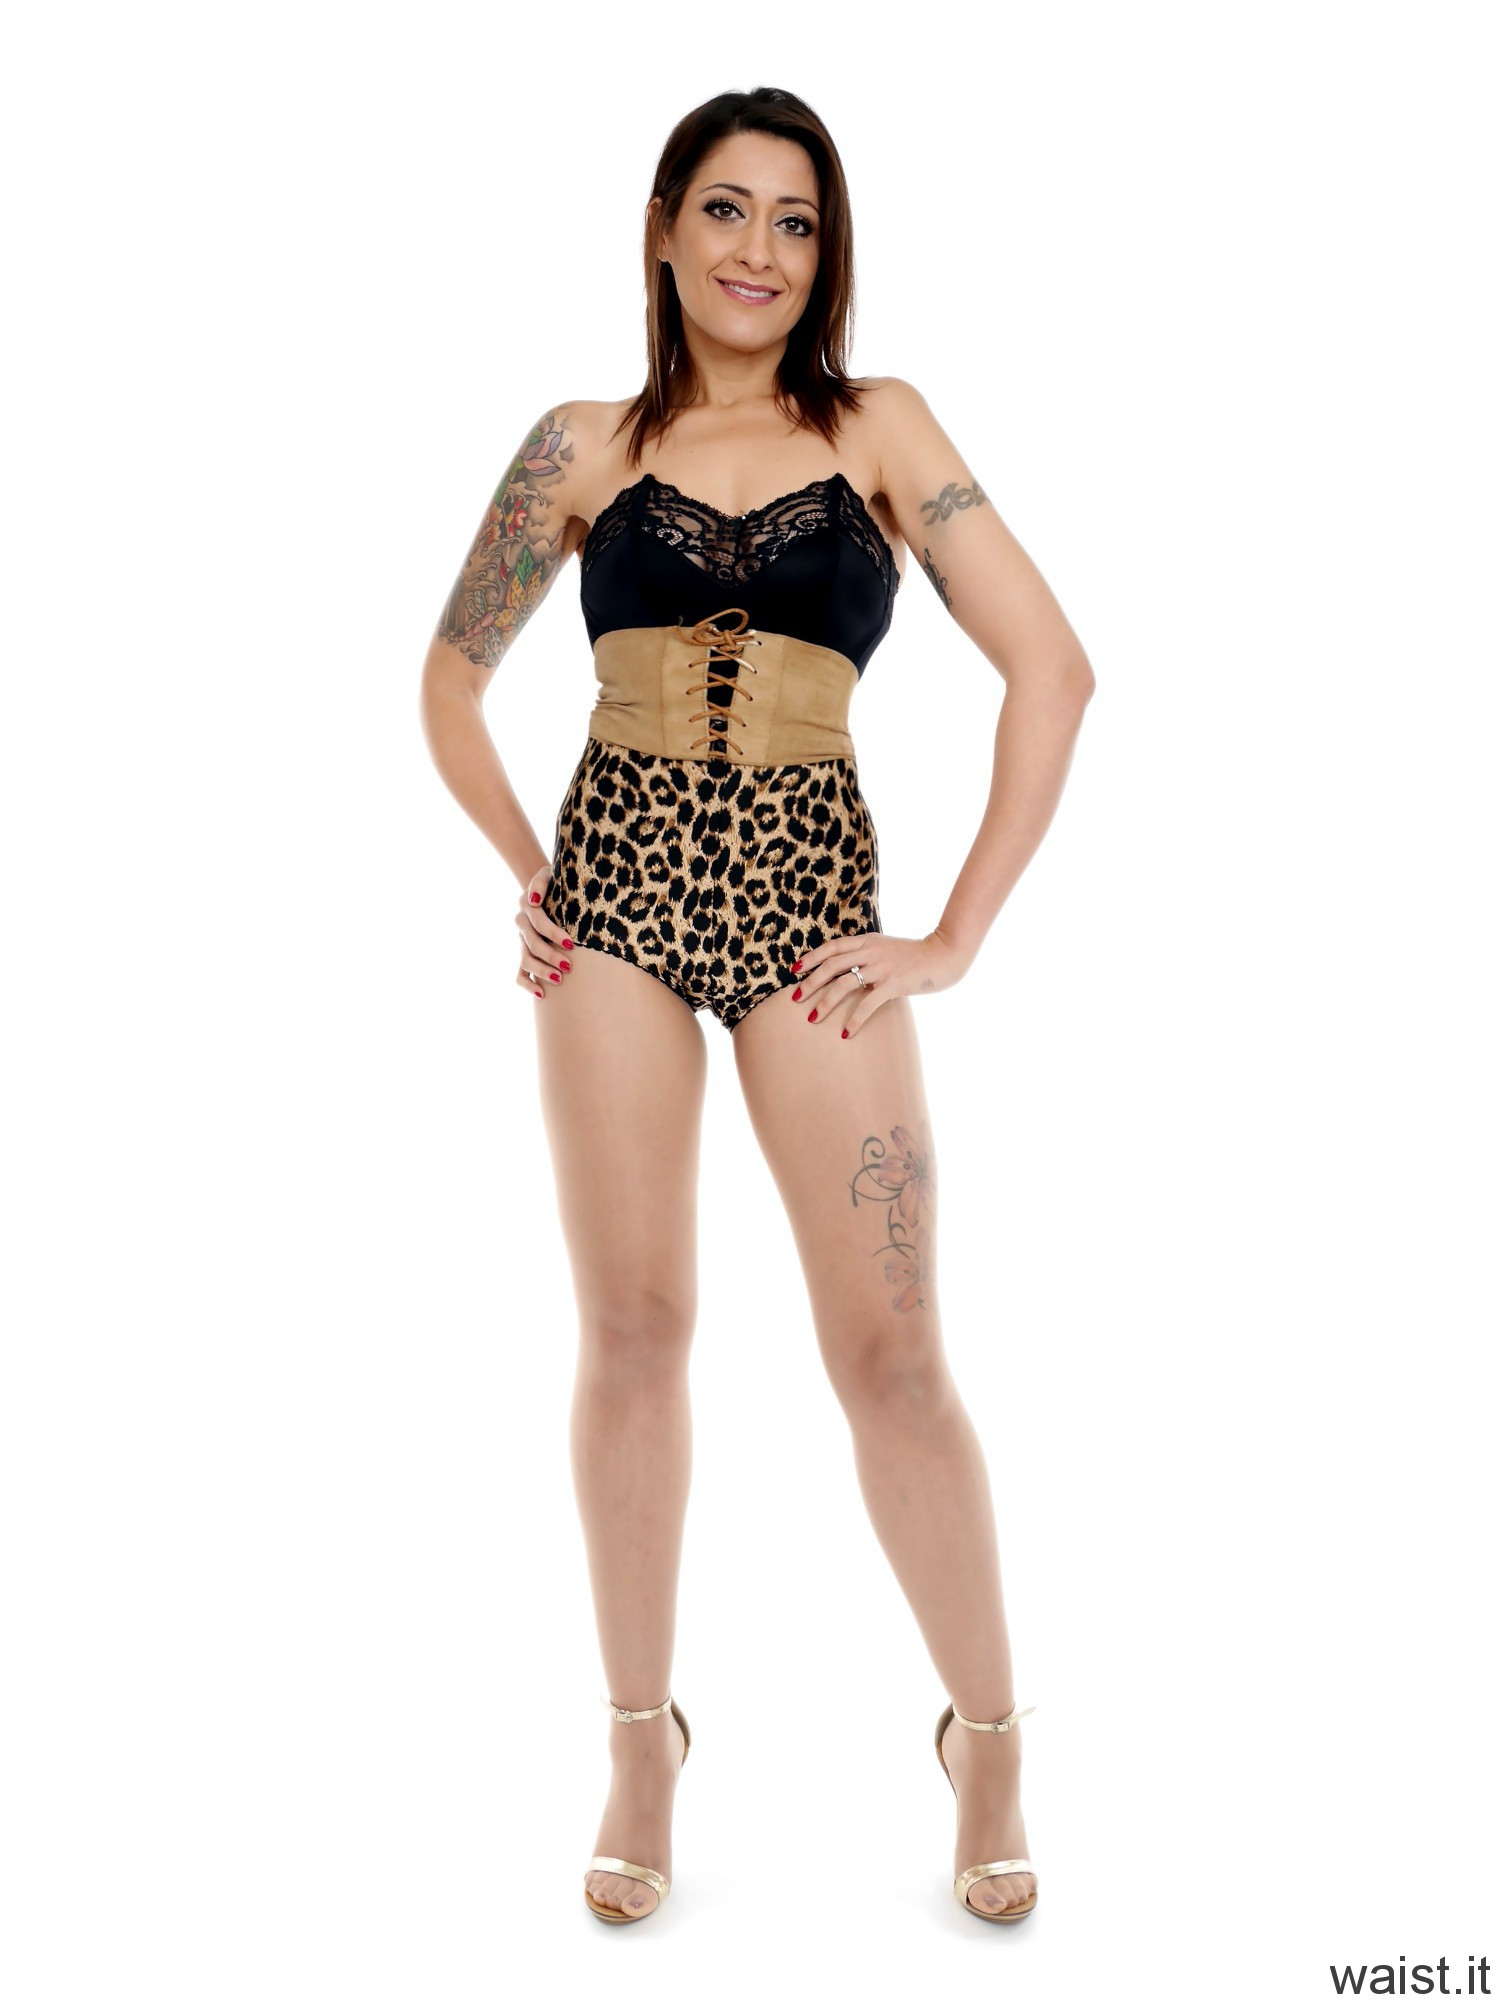 2016-11-26 Zoe34 Animal print control briefs and corset belt